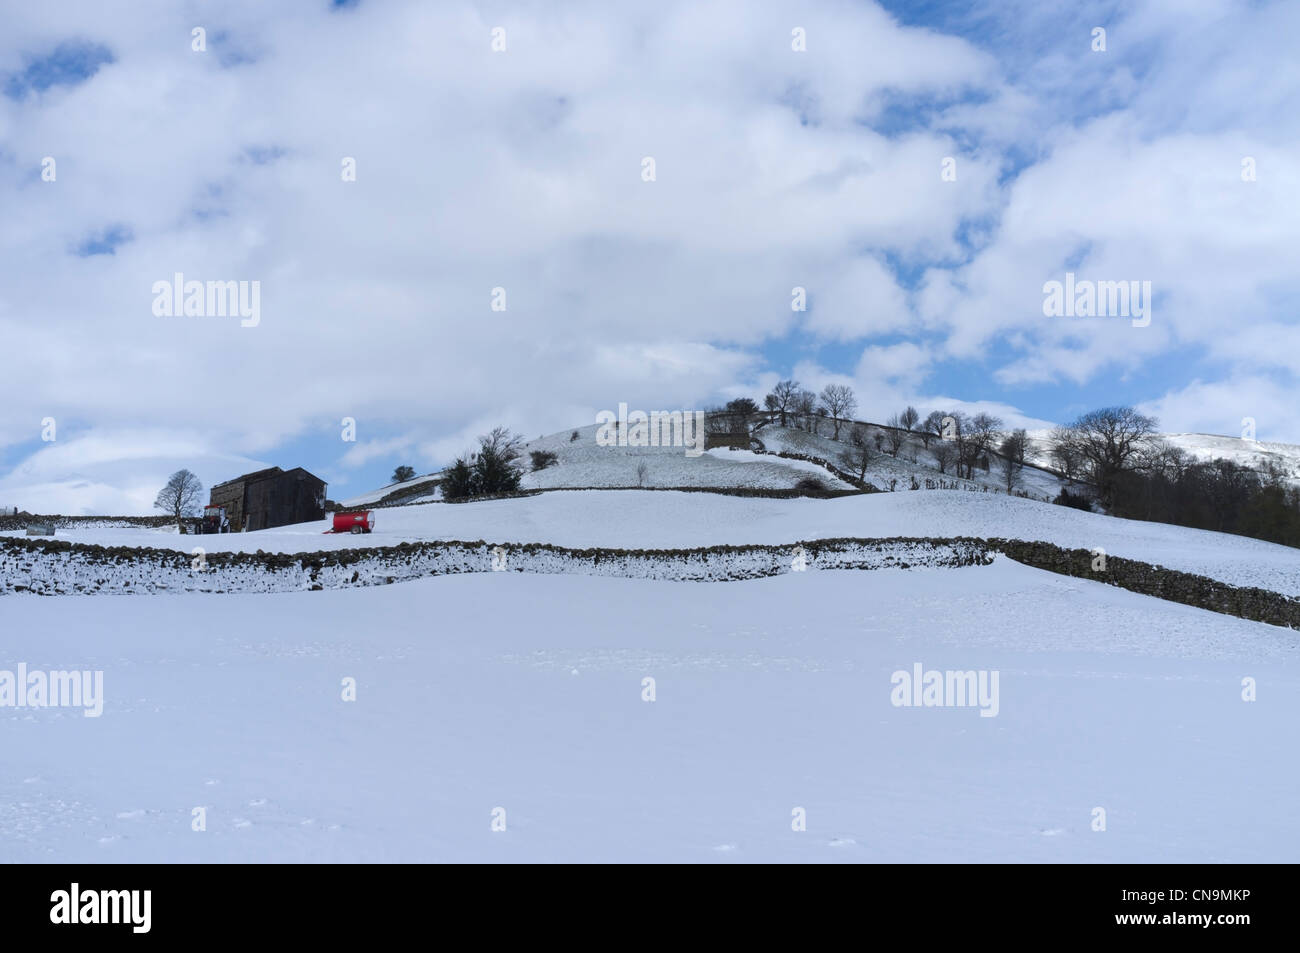 A red muck-spreader in a snow covered meadow, Swaledale, Yorkshire, England - Stock Image